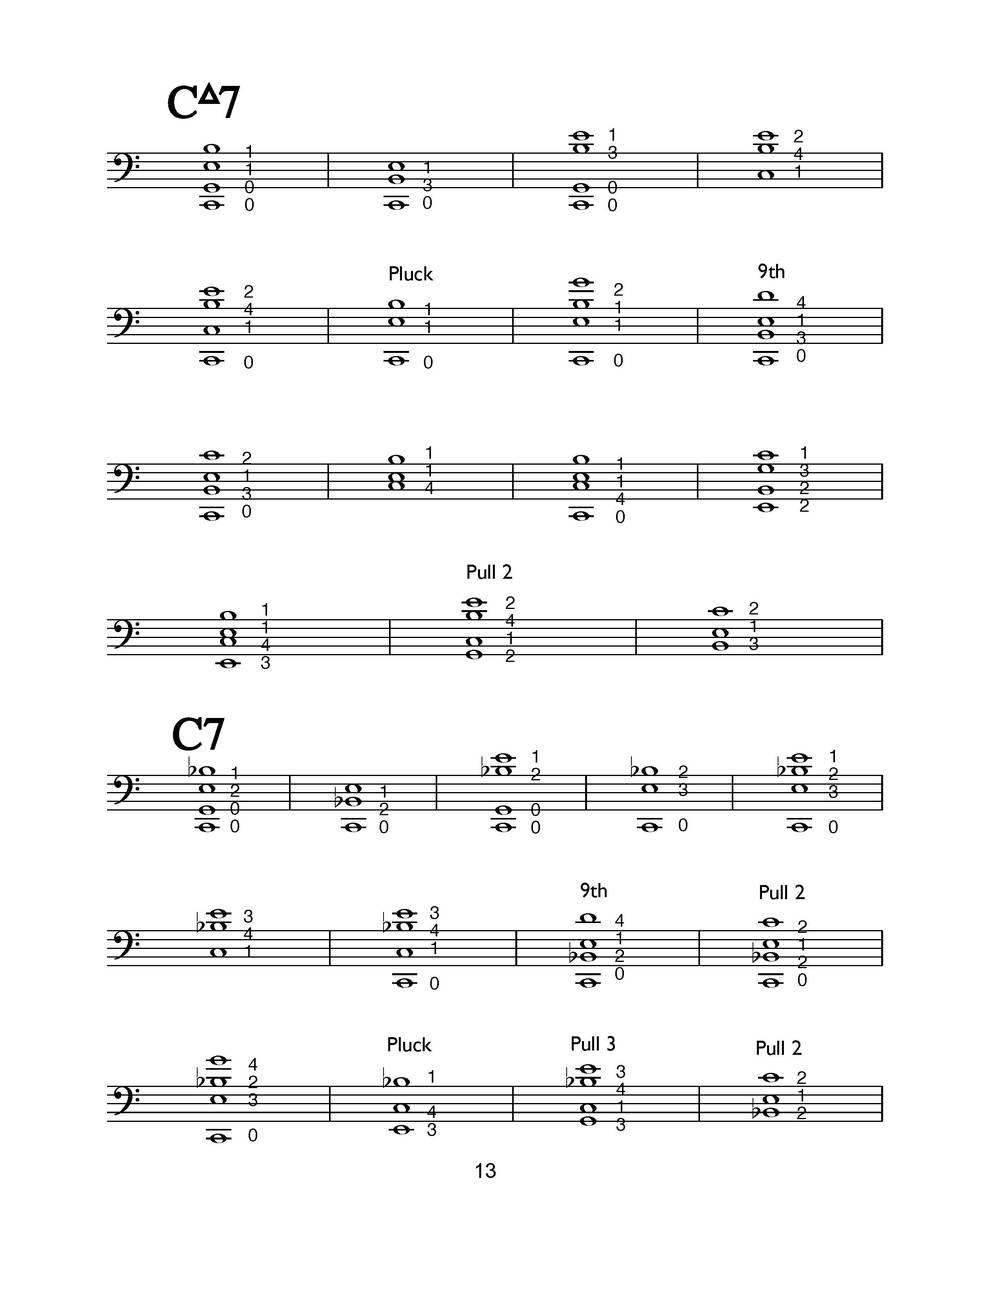 Cello Chords Bryan Charles Wilson About How To Easily Read Chord Diagrams Or Often Called Stamps A Review Of In The Strad